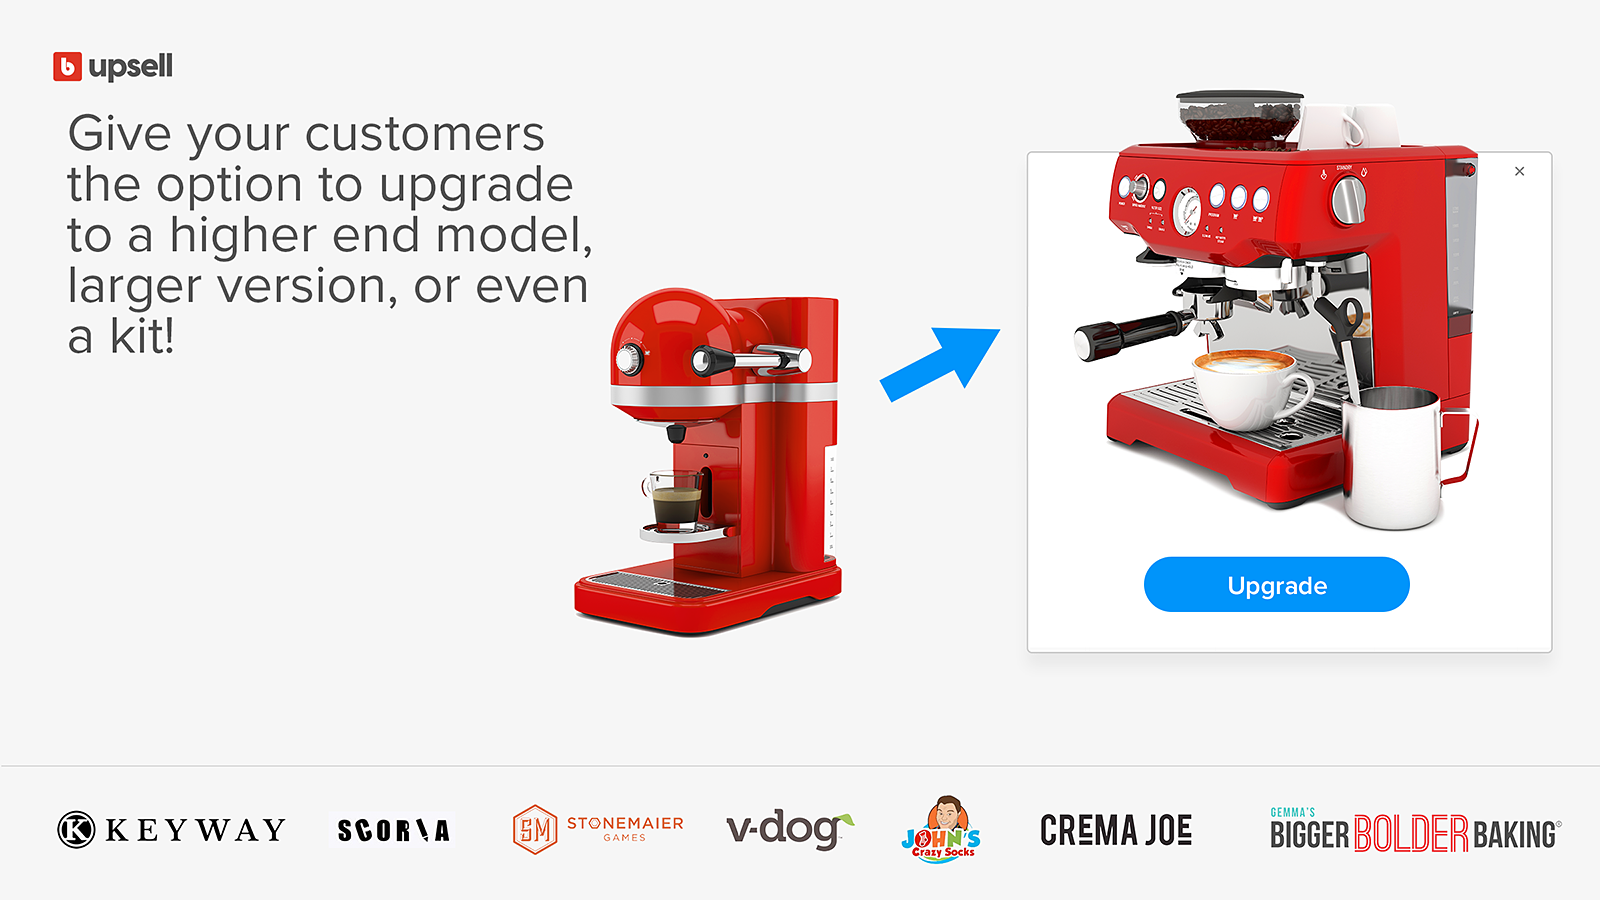 Offer true upsells with product upgrades